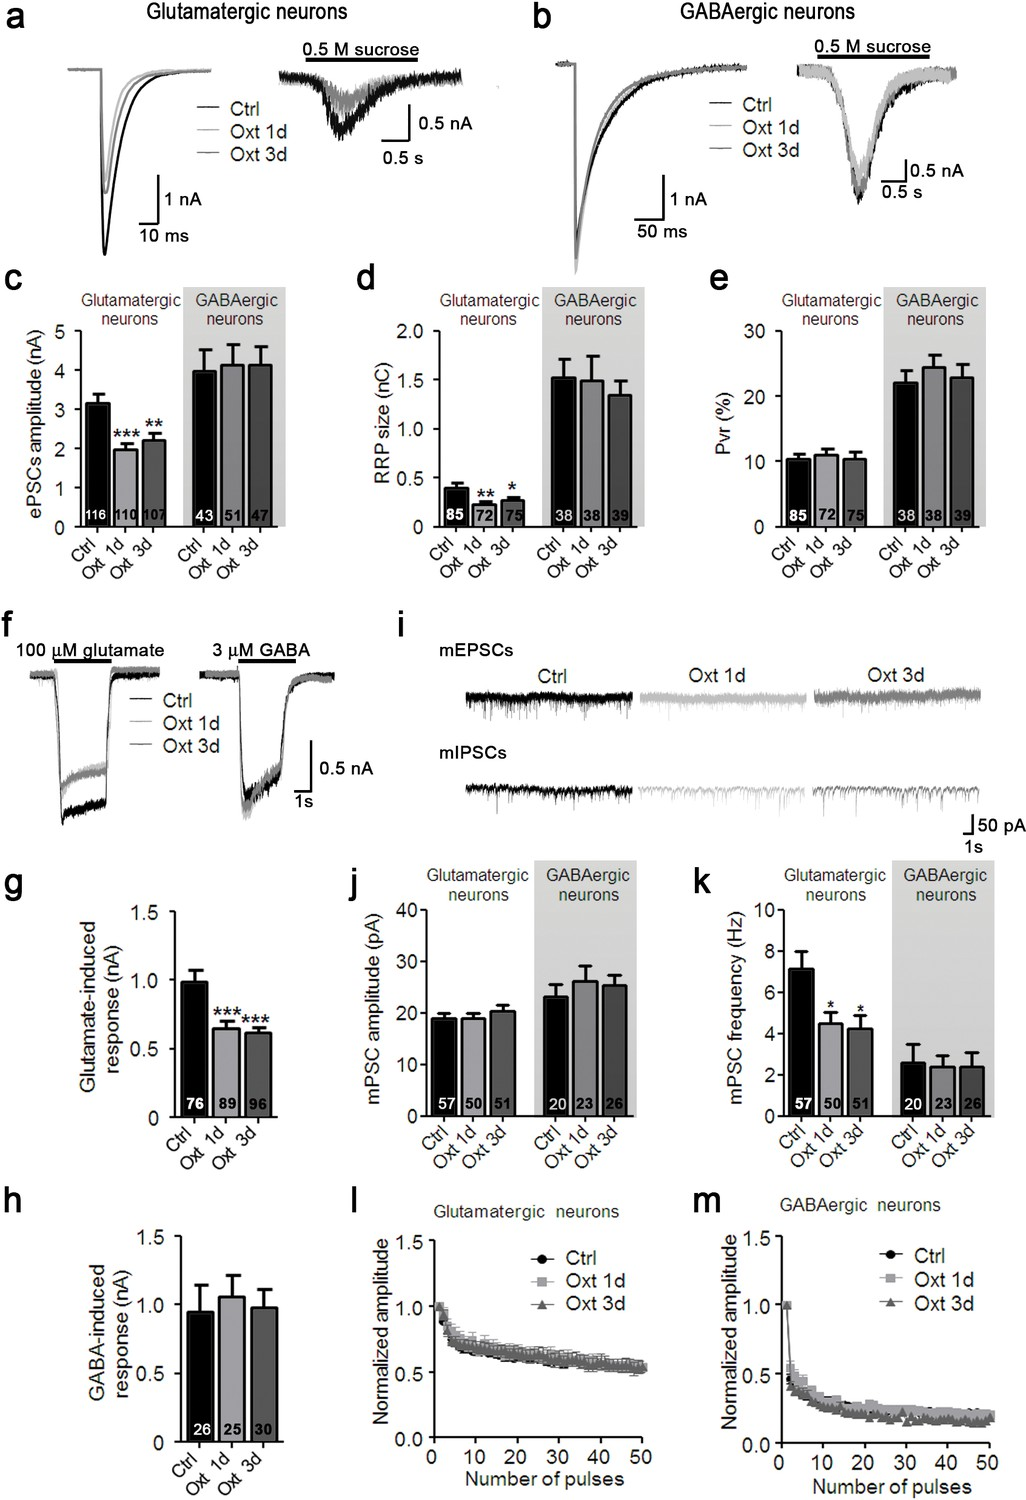 Transient Oxytocin Signaling Primes The Development And Function Of Worthington C Wiring Diagram Oxt Treatment Reduces Evoked Spontaneous Glutamatergic Synaptic Transmission In Autaptic Hippocampal Neurons